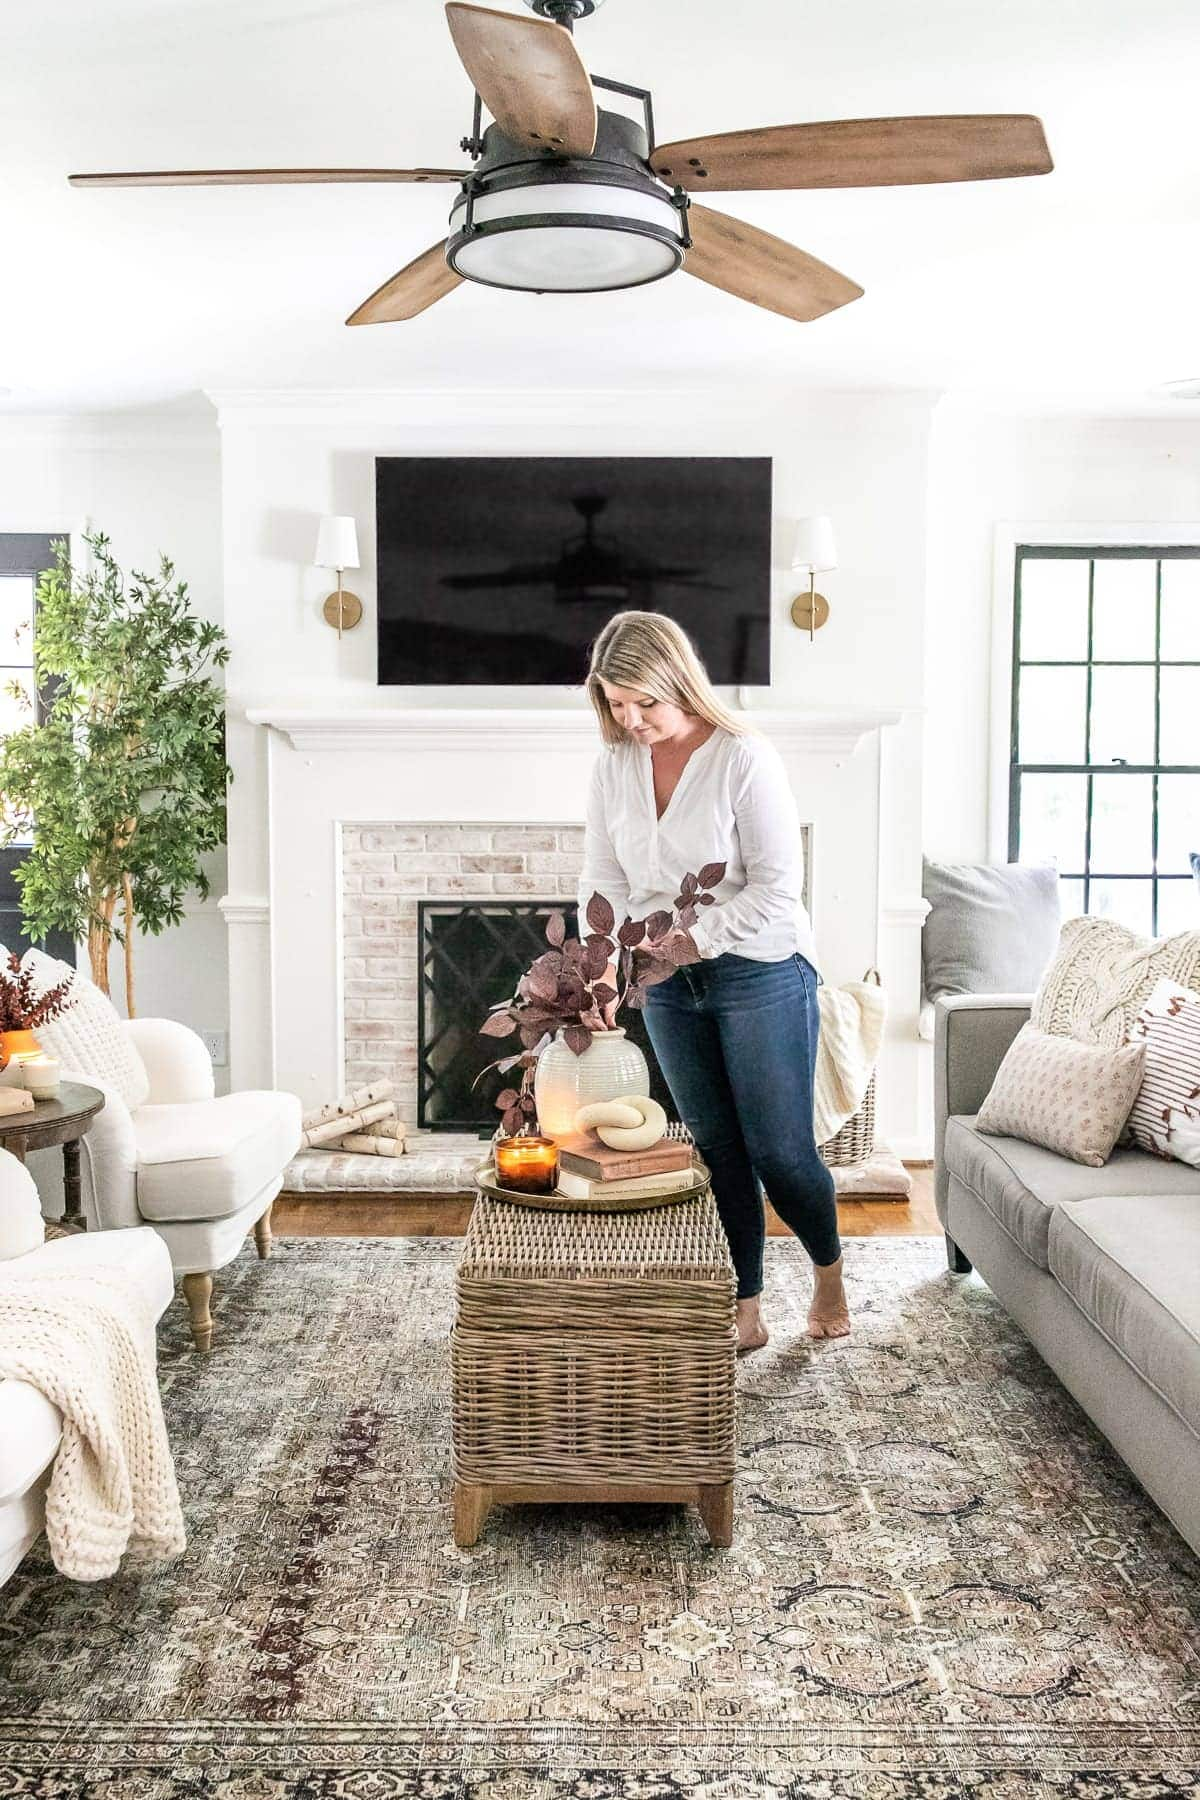 living room decorated for fall with ceiling fan and tv above fireplace